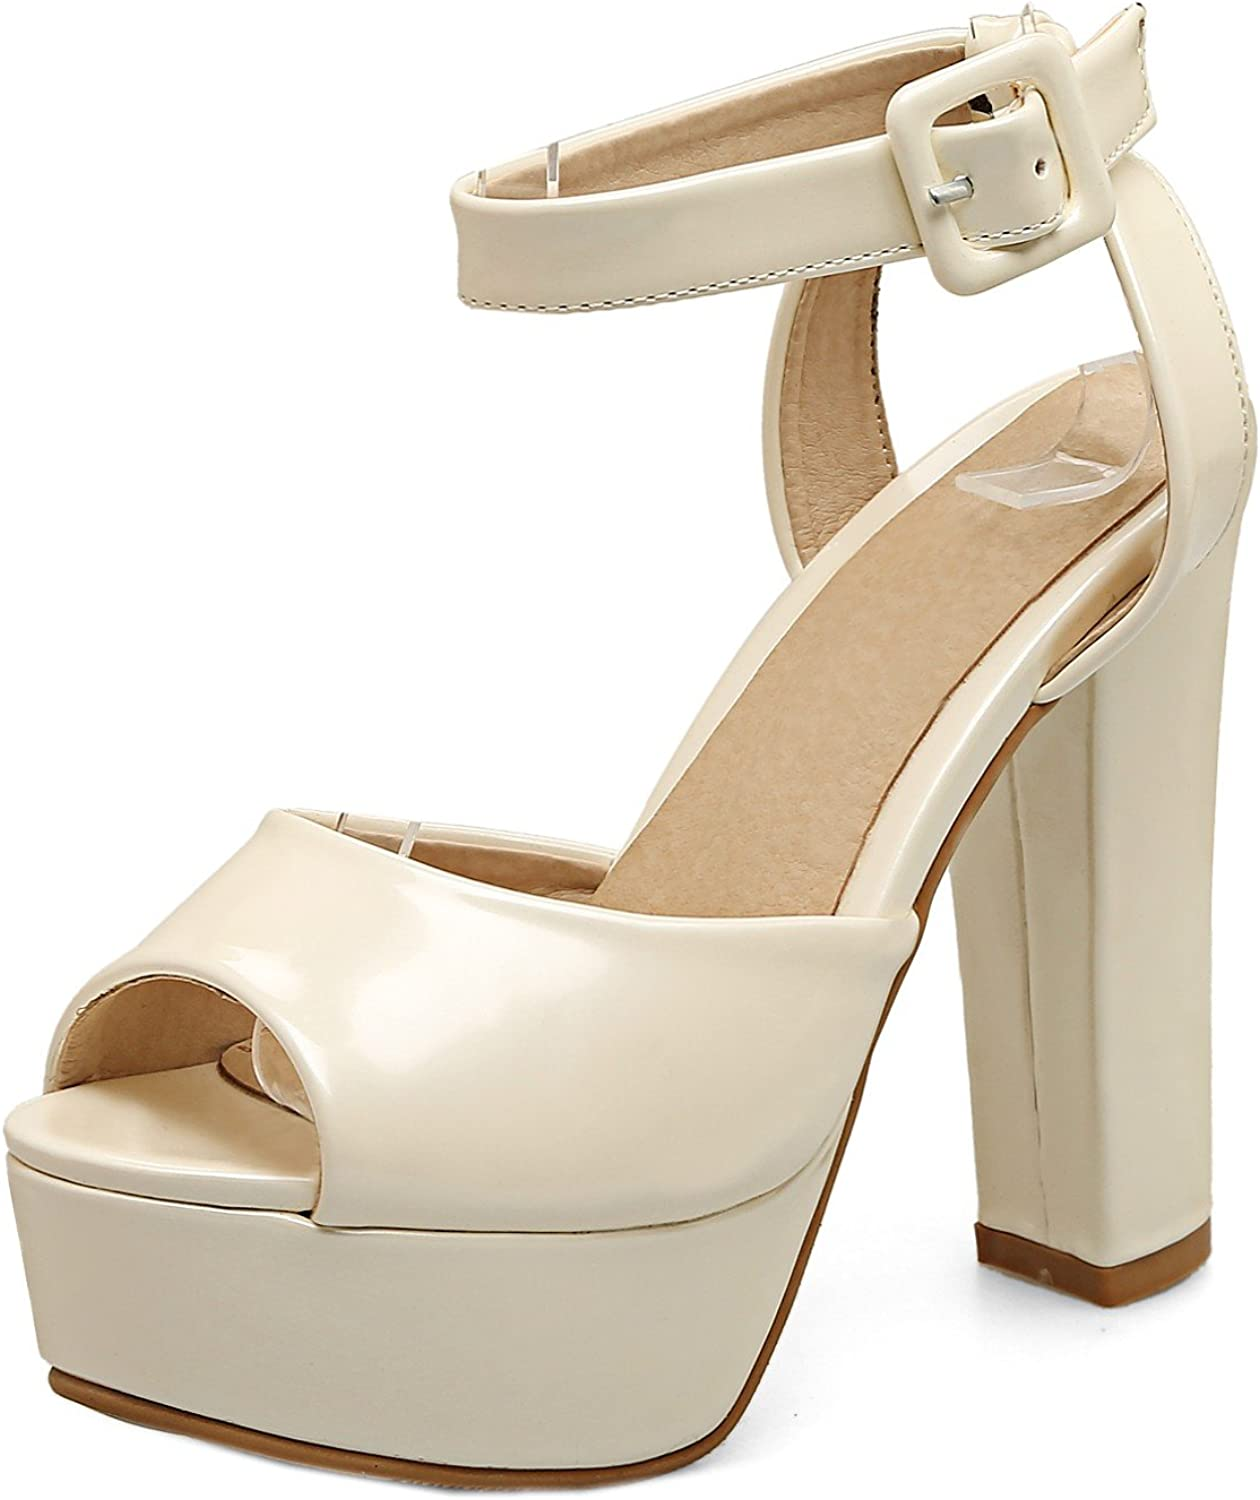 Rongzhi Womens Pumps Thick High Heels Platform Ankle Strap Buckle Sandals Party Dress Heeled shoes